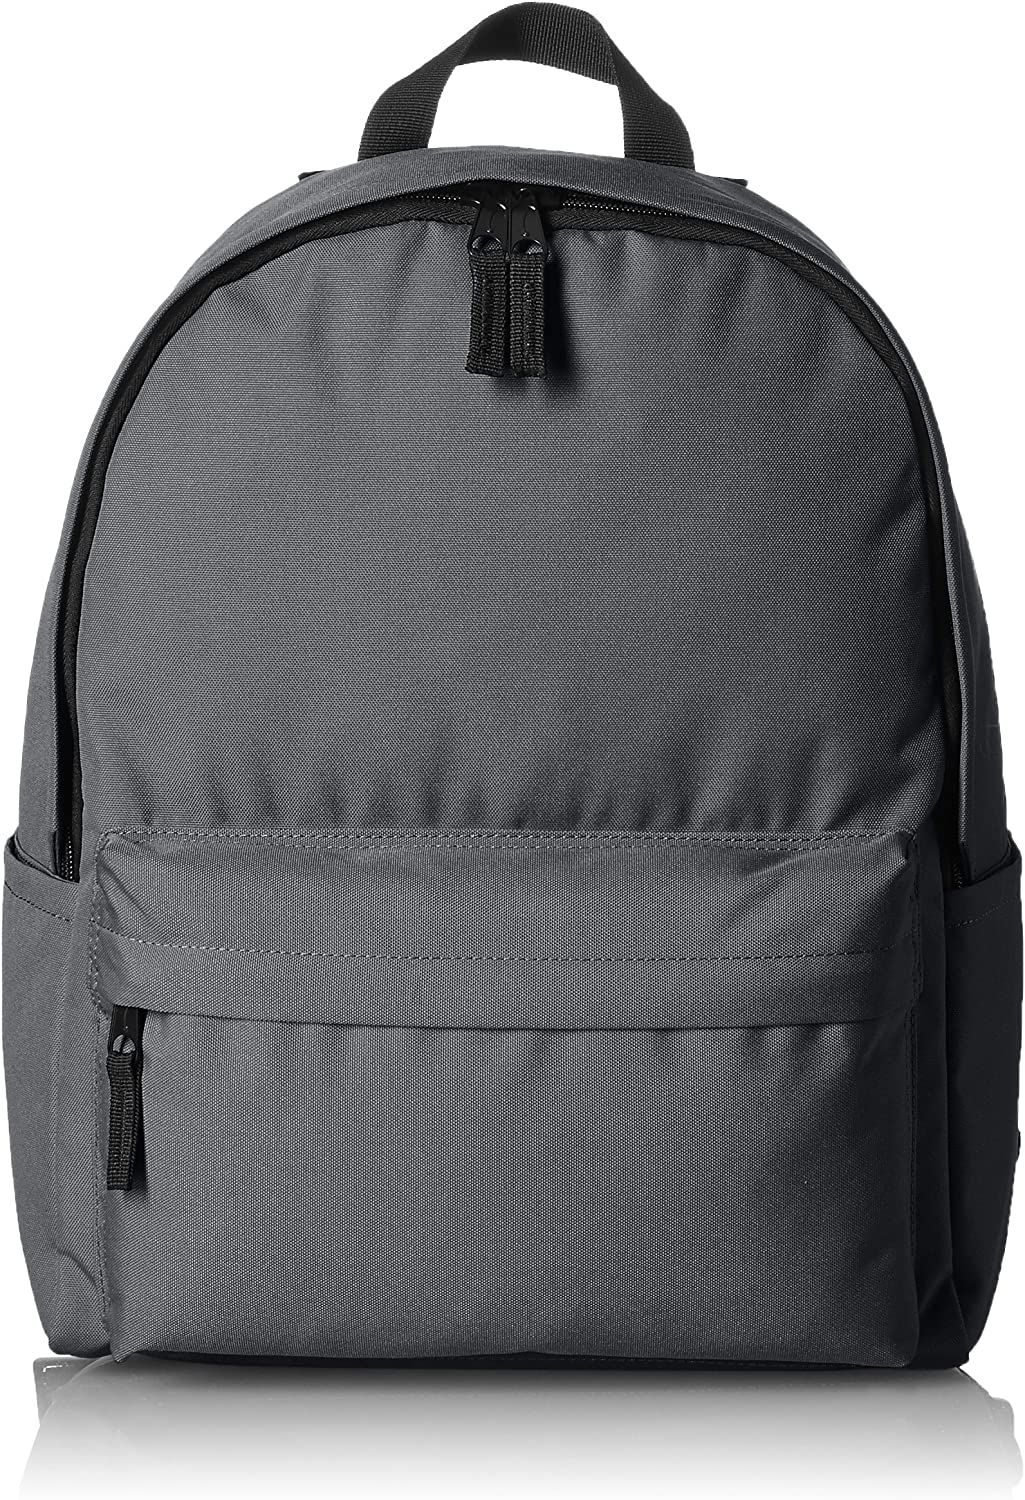 AmazonBasics Classic Backpack, Grey - 4-Pack